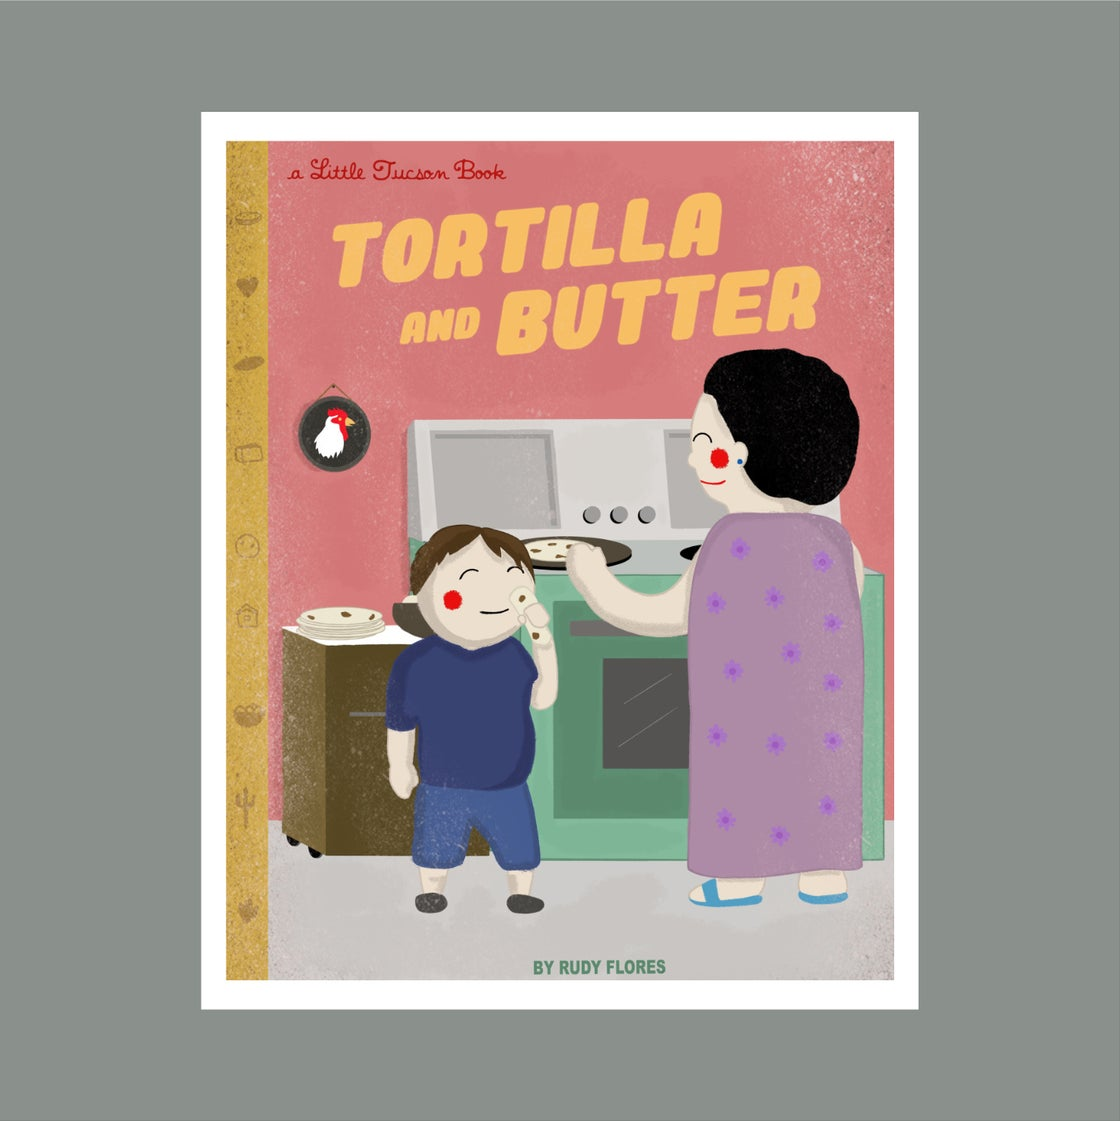 Image of Tortilla and Butter